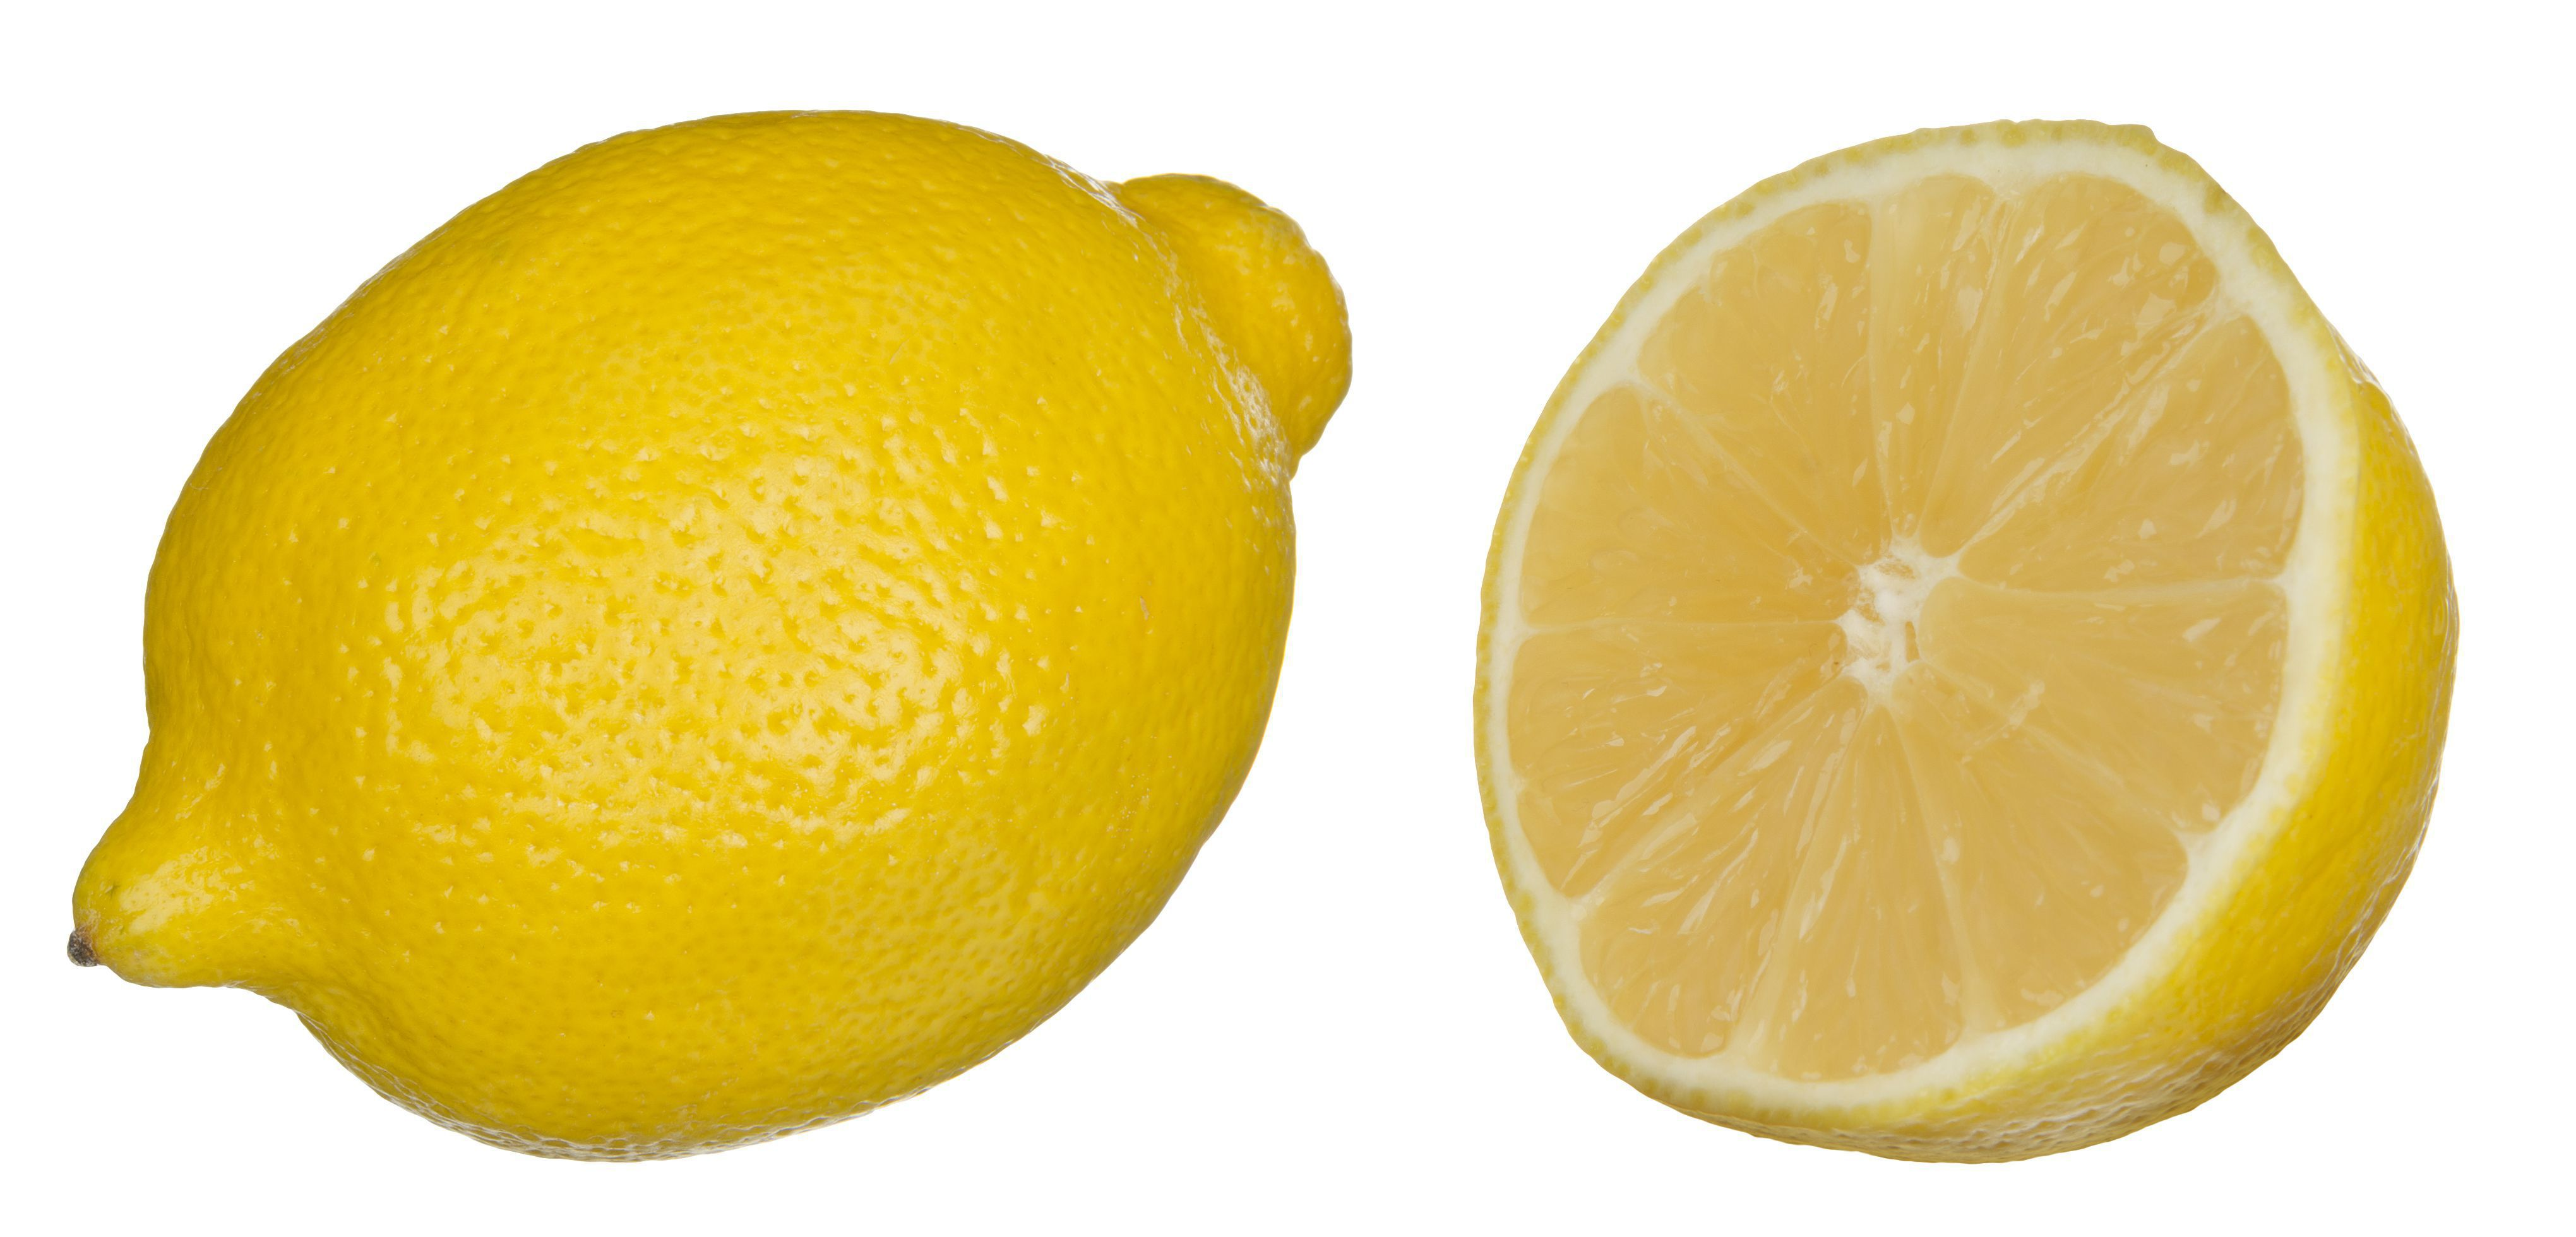 Lemon Hd Wallpaper